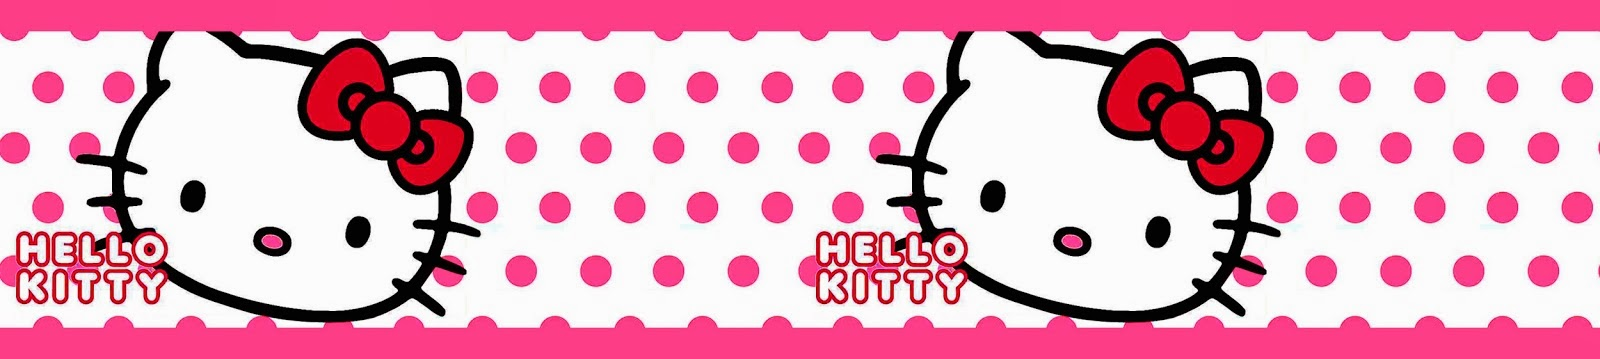 Wallpaper Border Hello Kitty 1600x359